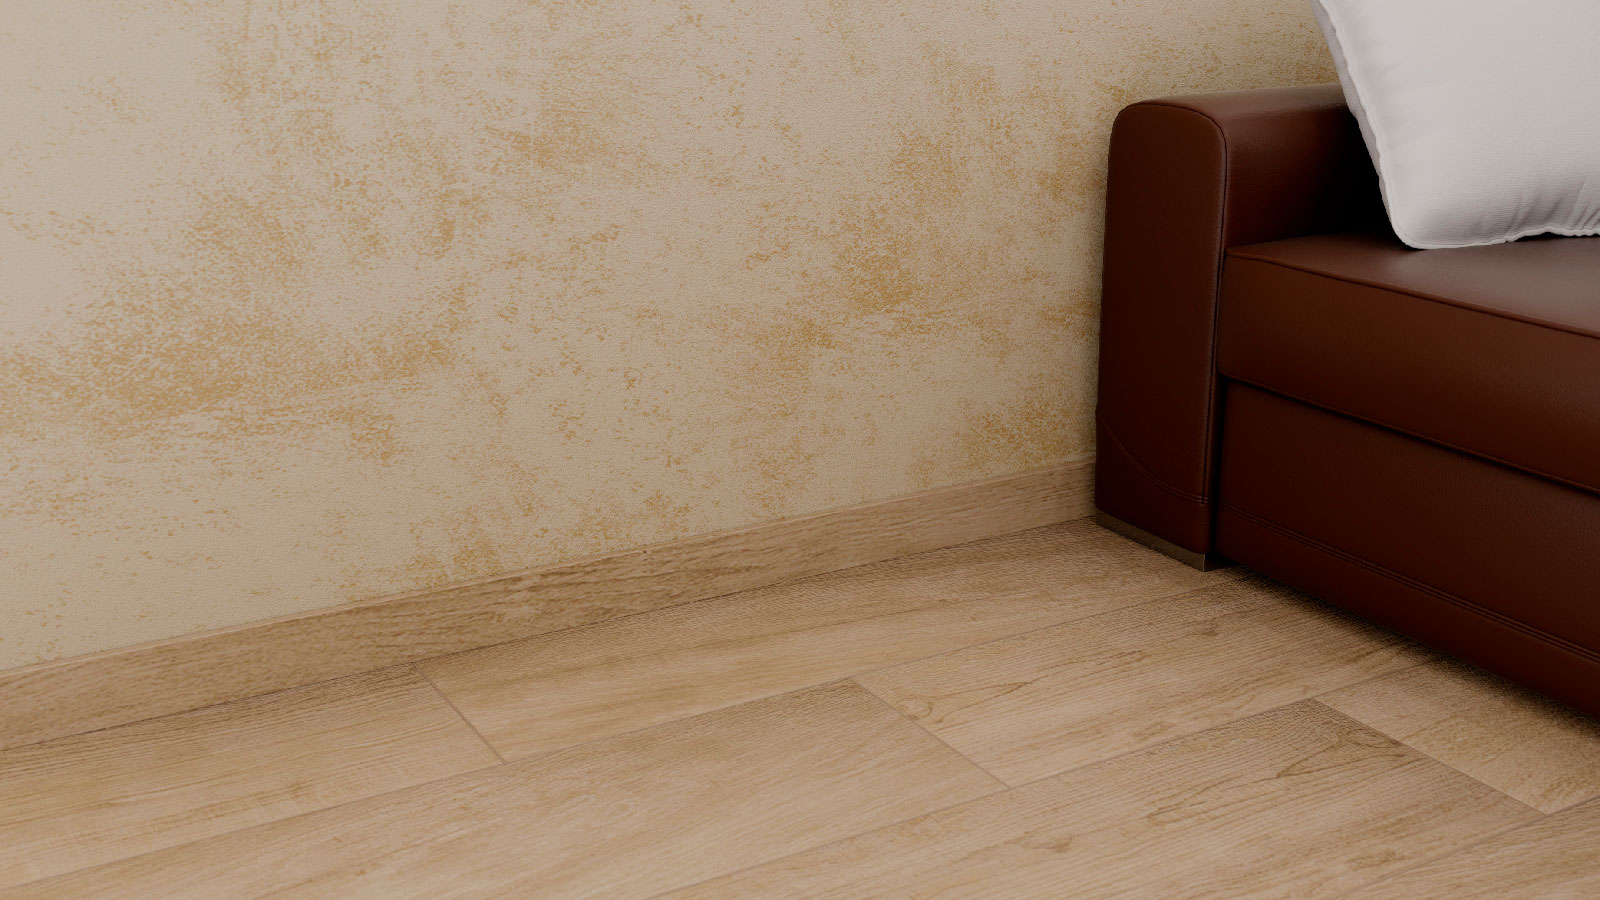 Pro-skirting by Butech: the technical evolution of the decorative baseboard